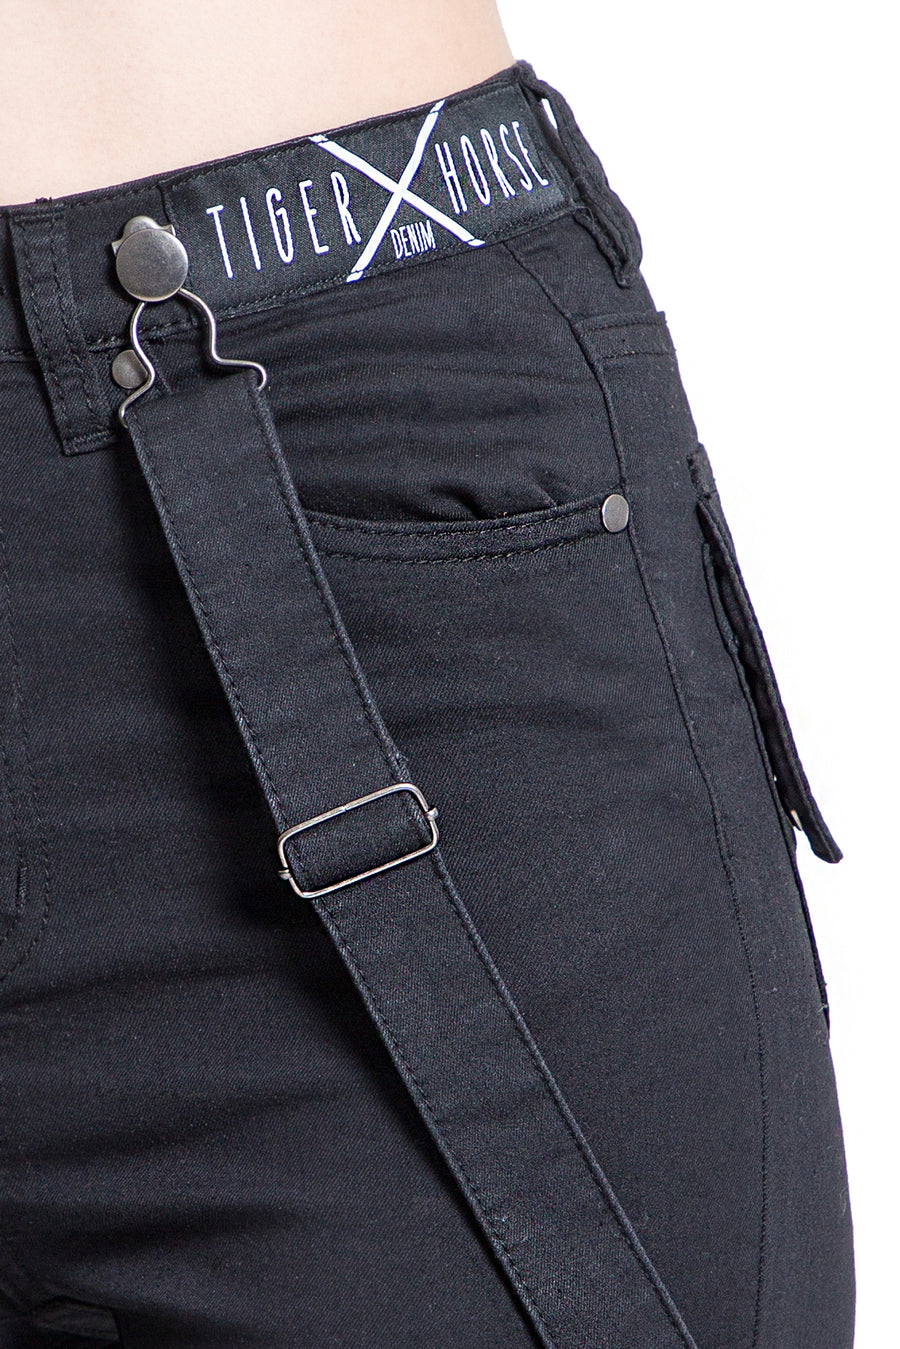 ALLY High-Waist Black Stretch Jean